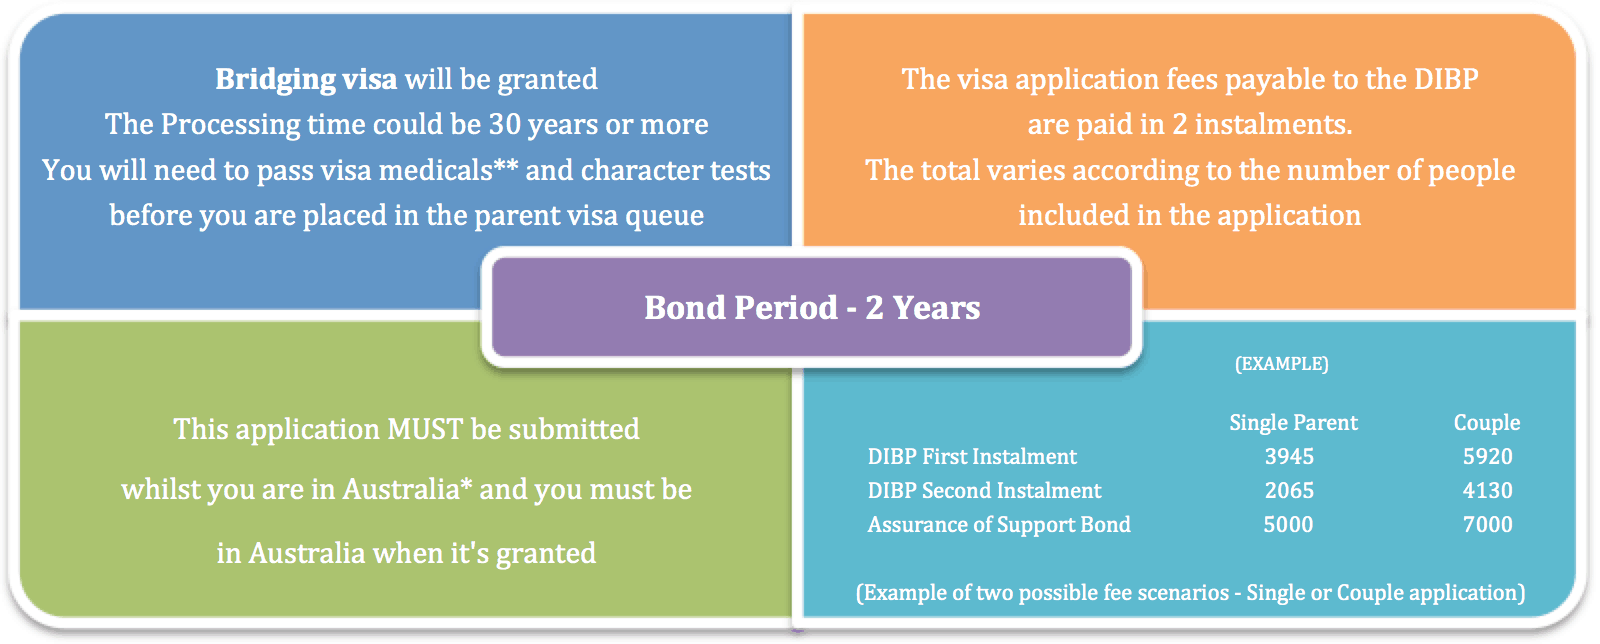 Details of Subclass 804 Visa